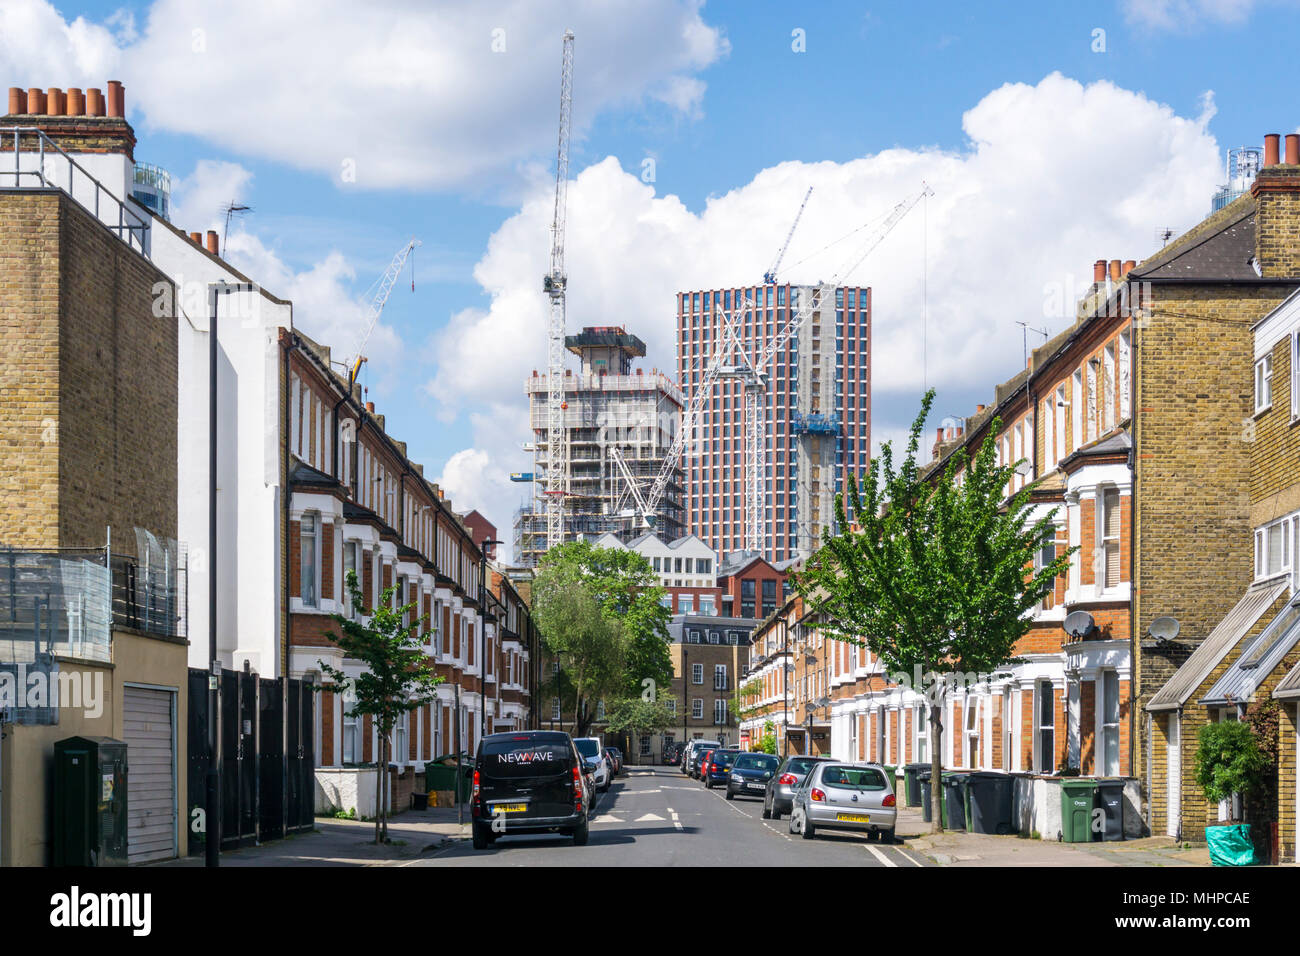 New developments at Nine Elms,Vauxhall seen rising over the terraced houses of Rita Road, Lambeth. - Stock Image